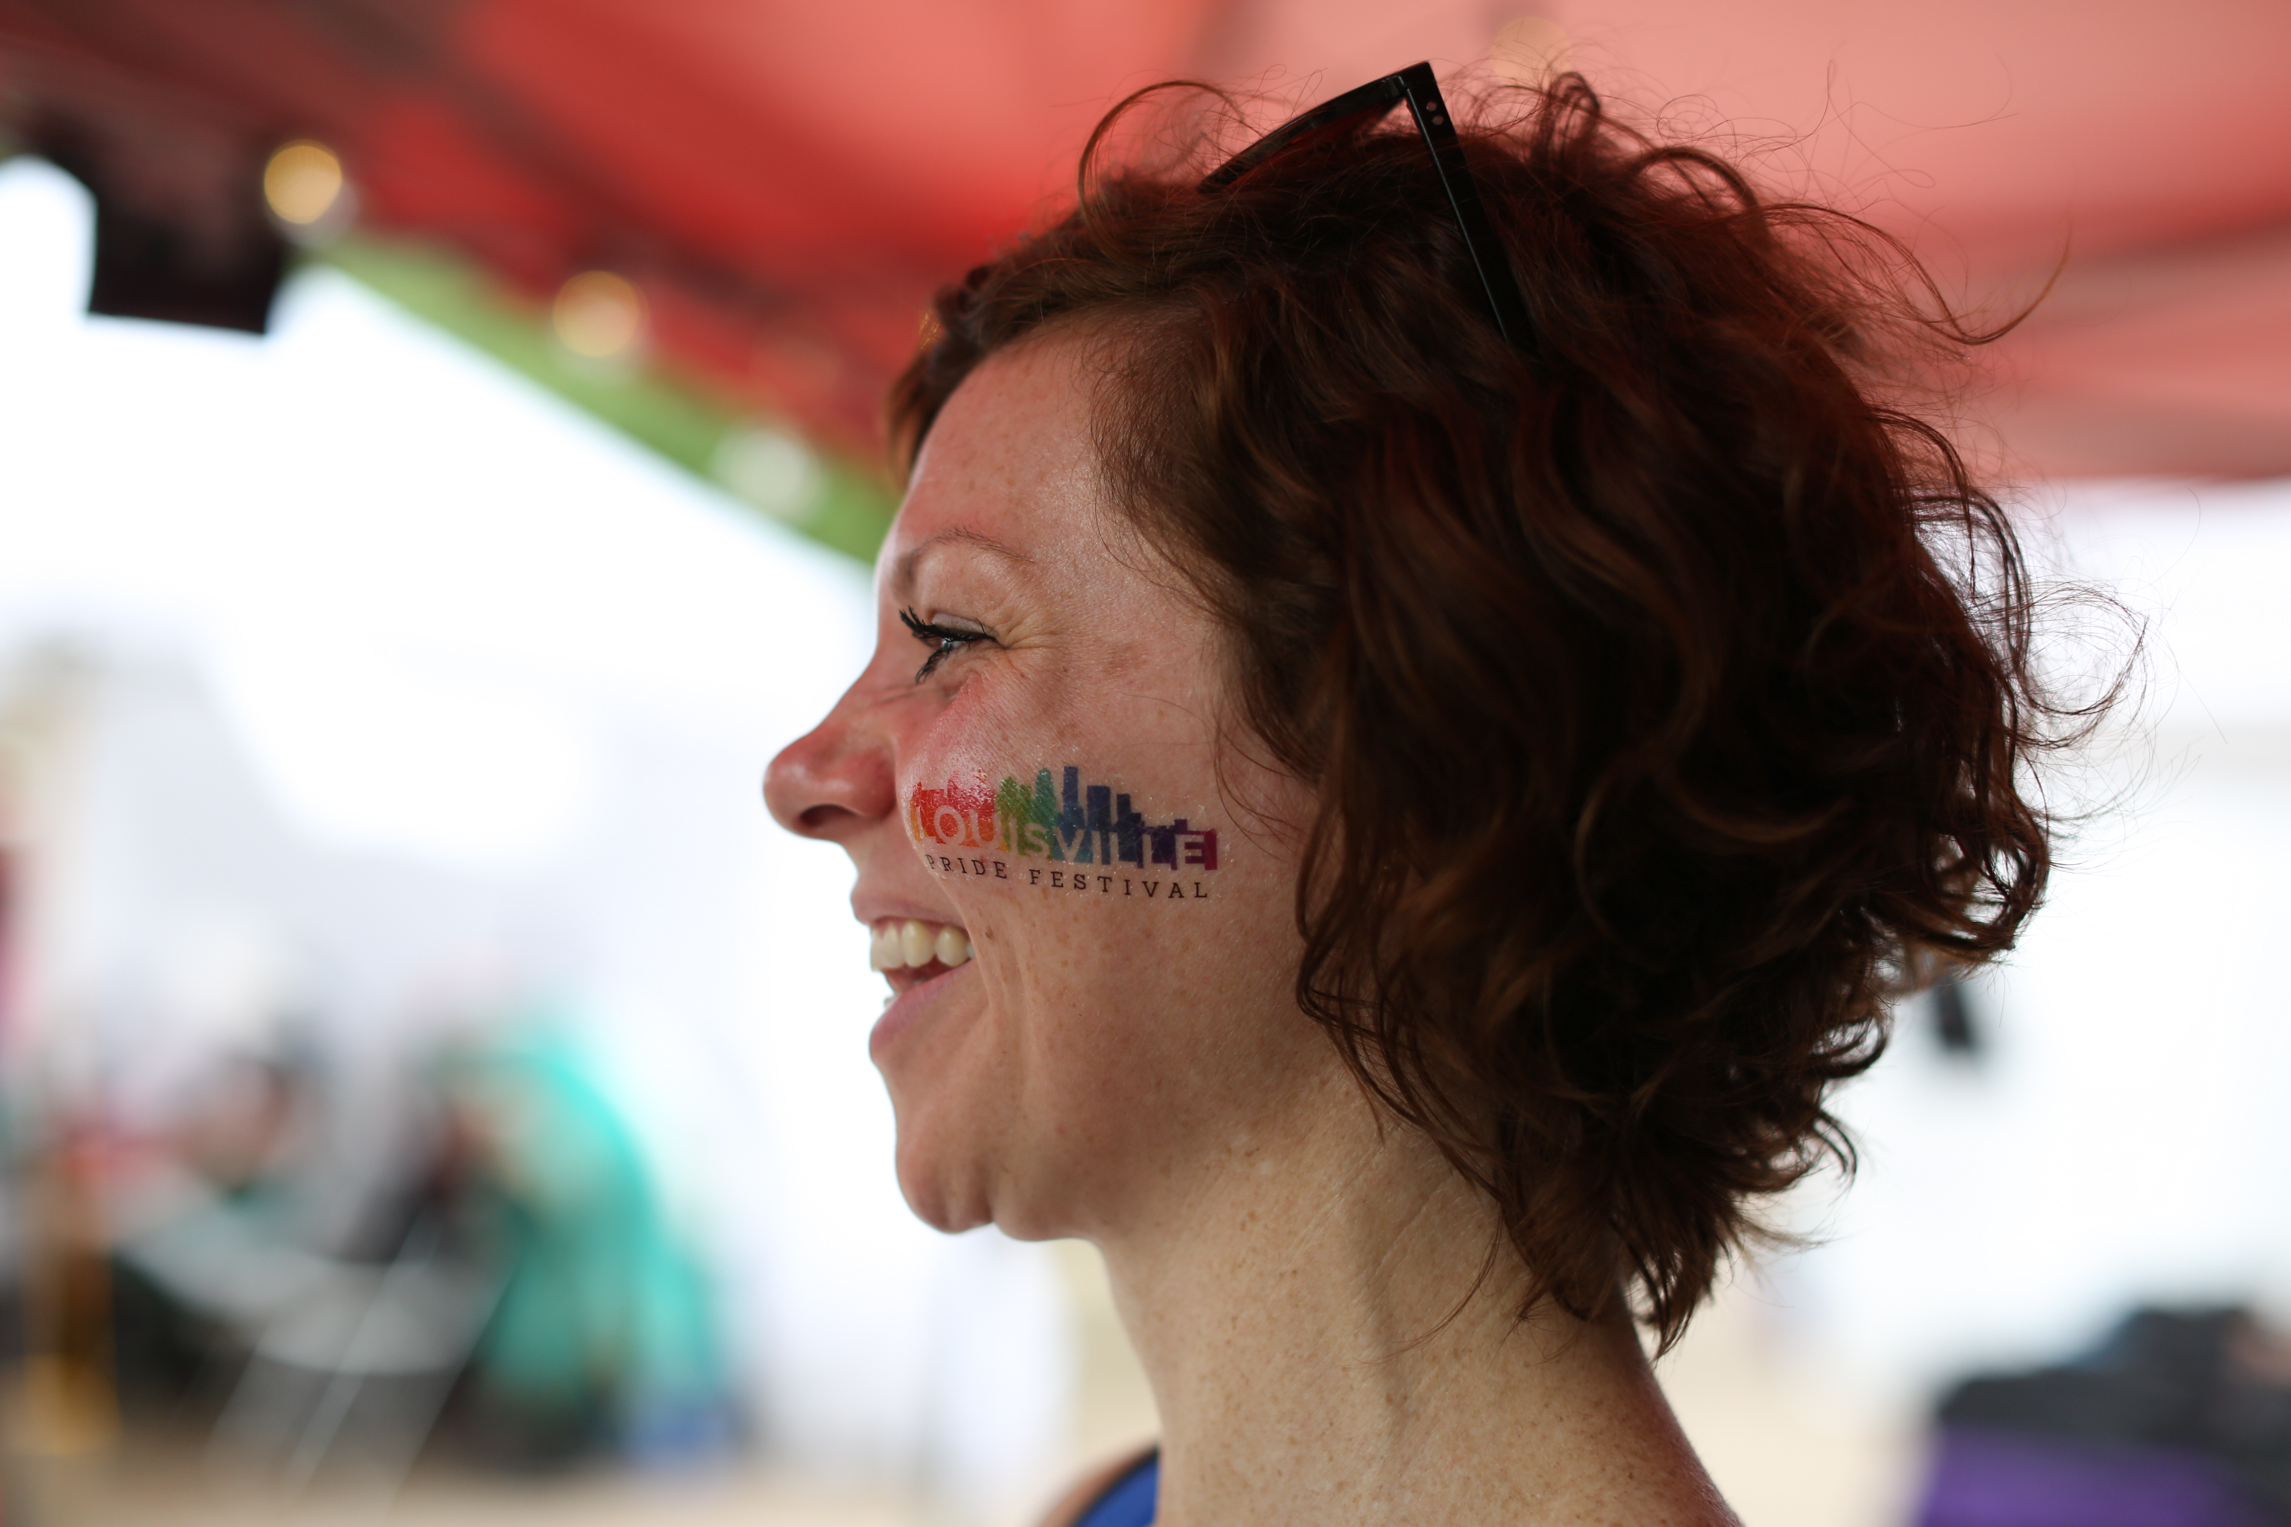 PRIDE W-FEVA 2015 EDITED CRYSTAL LUDWICK PHOTO (32 of 83).jpg